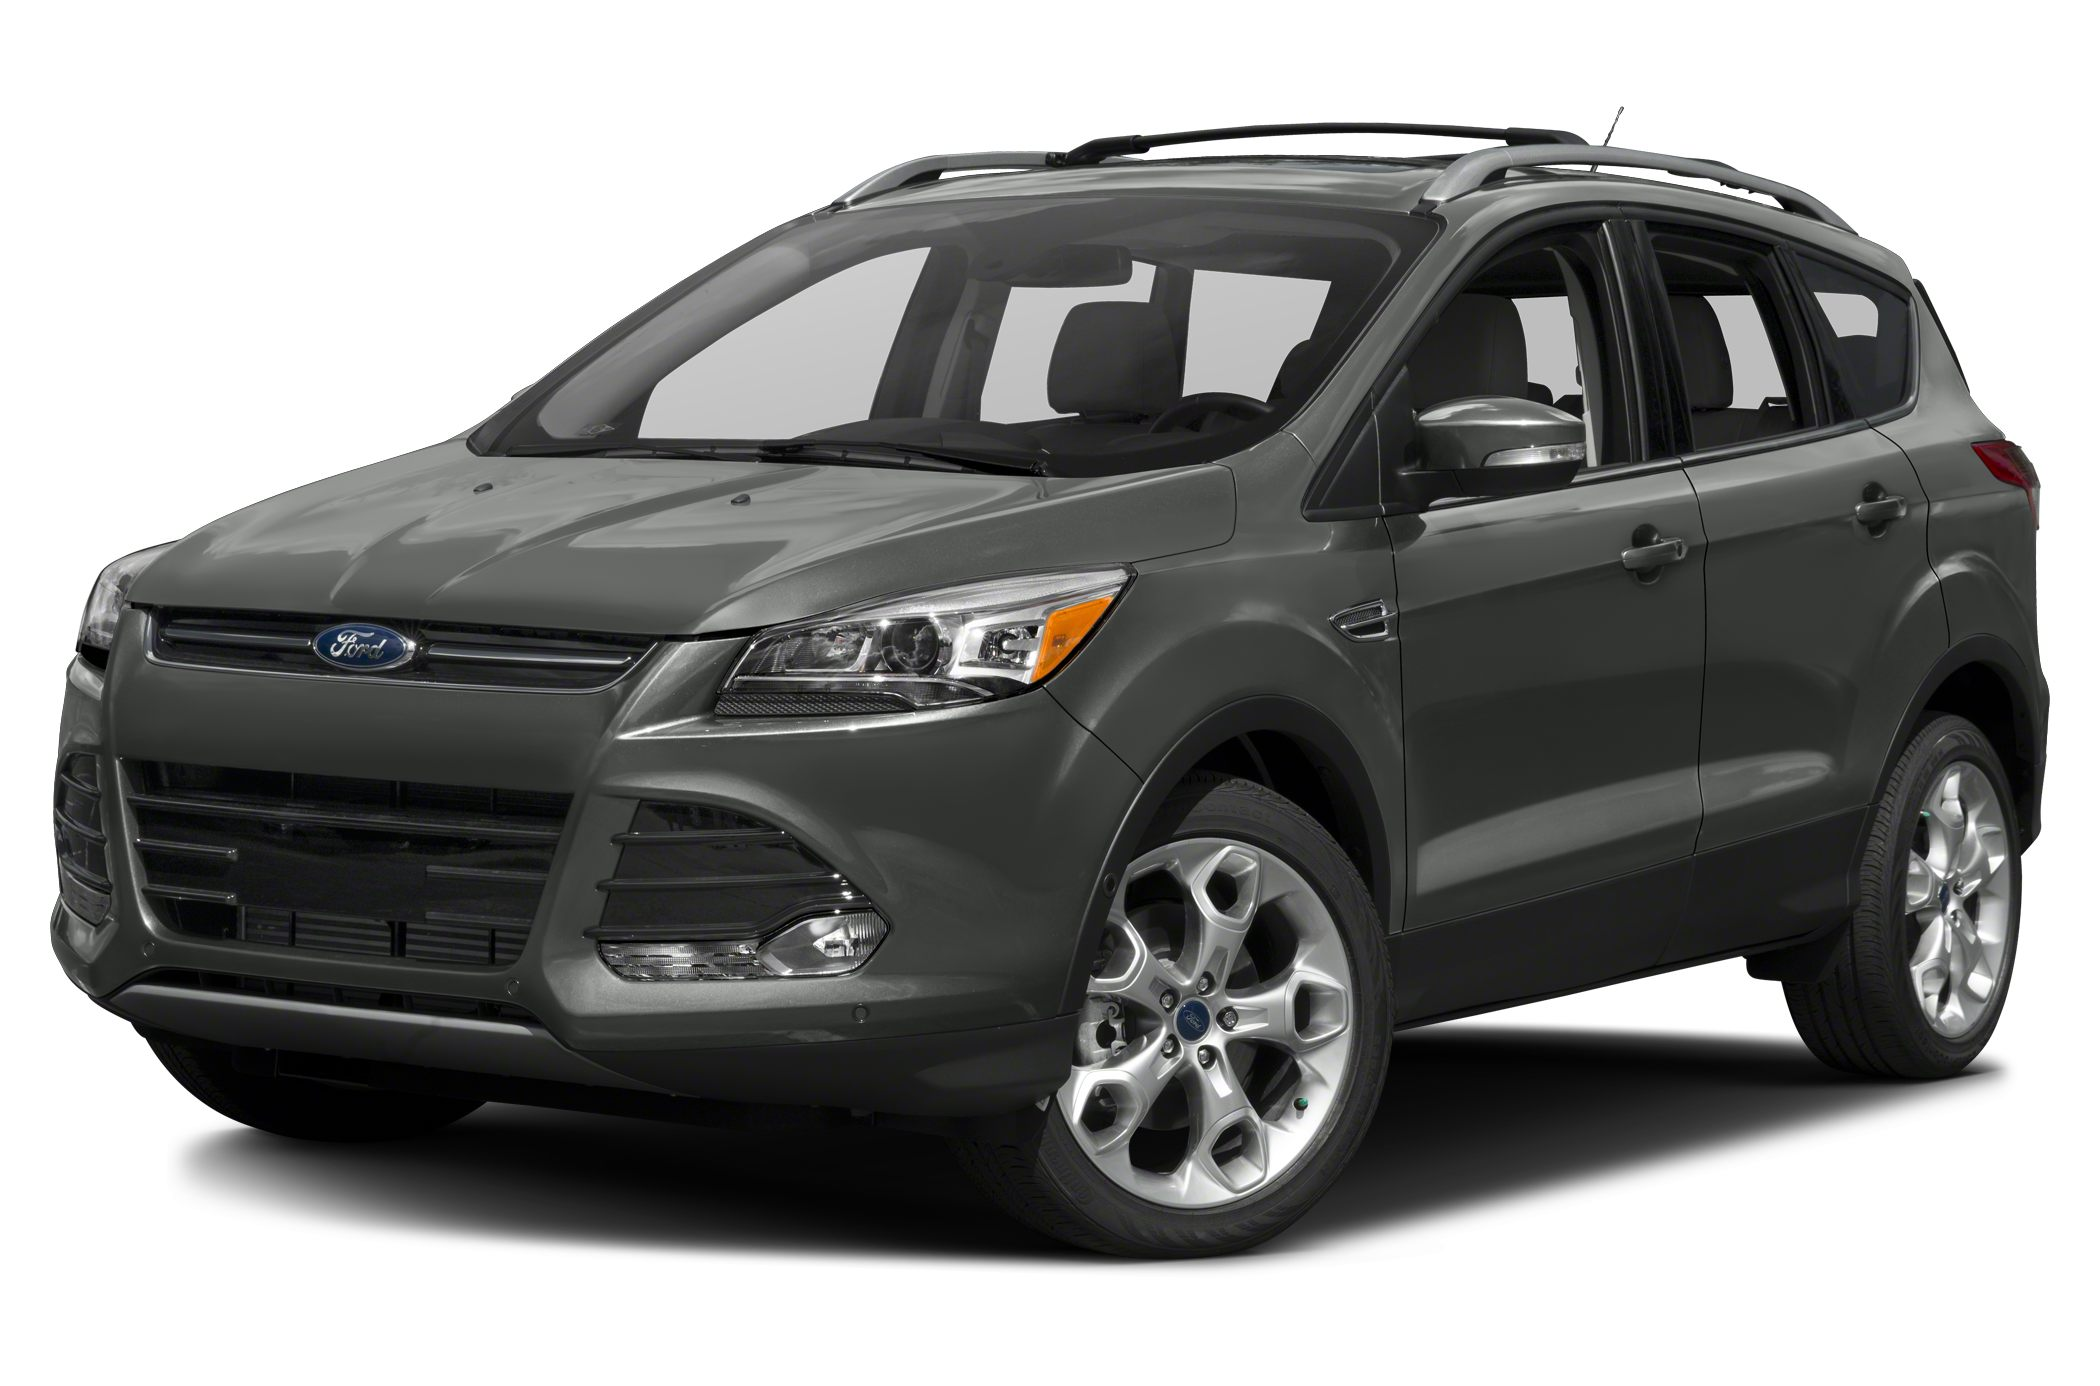 2016 Ford Escape Titanium Introducing the 2016 Ford Escape It delivers style and power in a singl